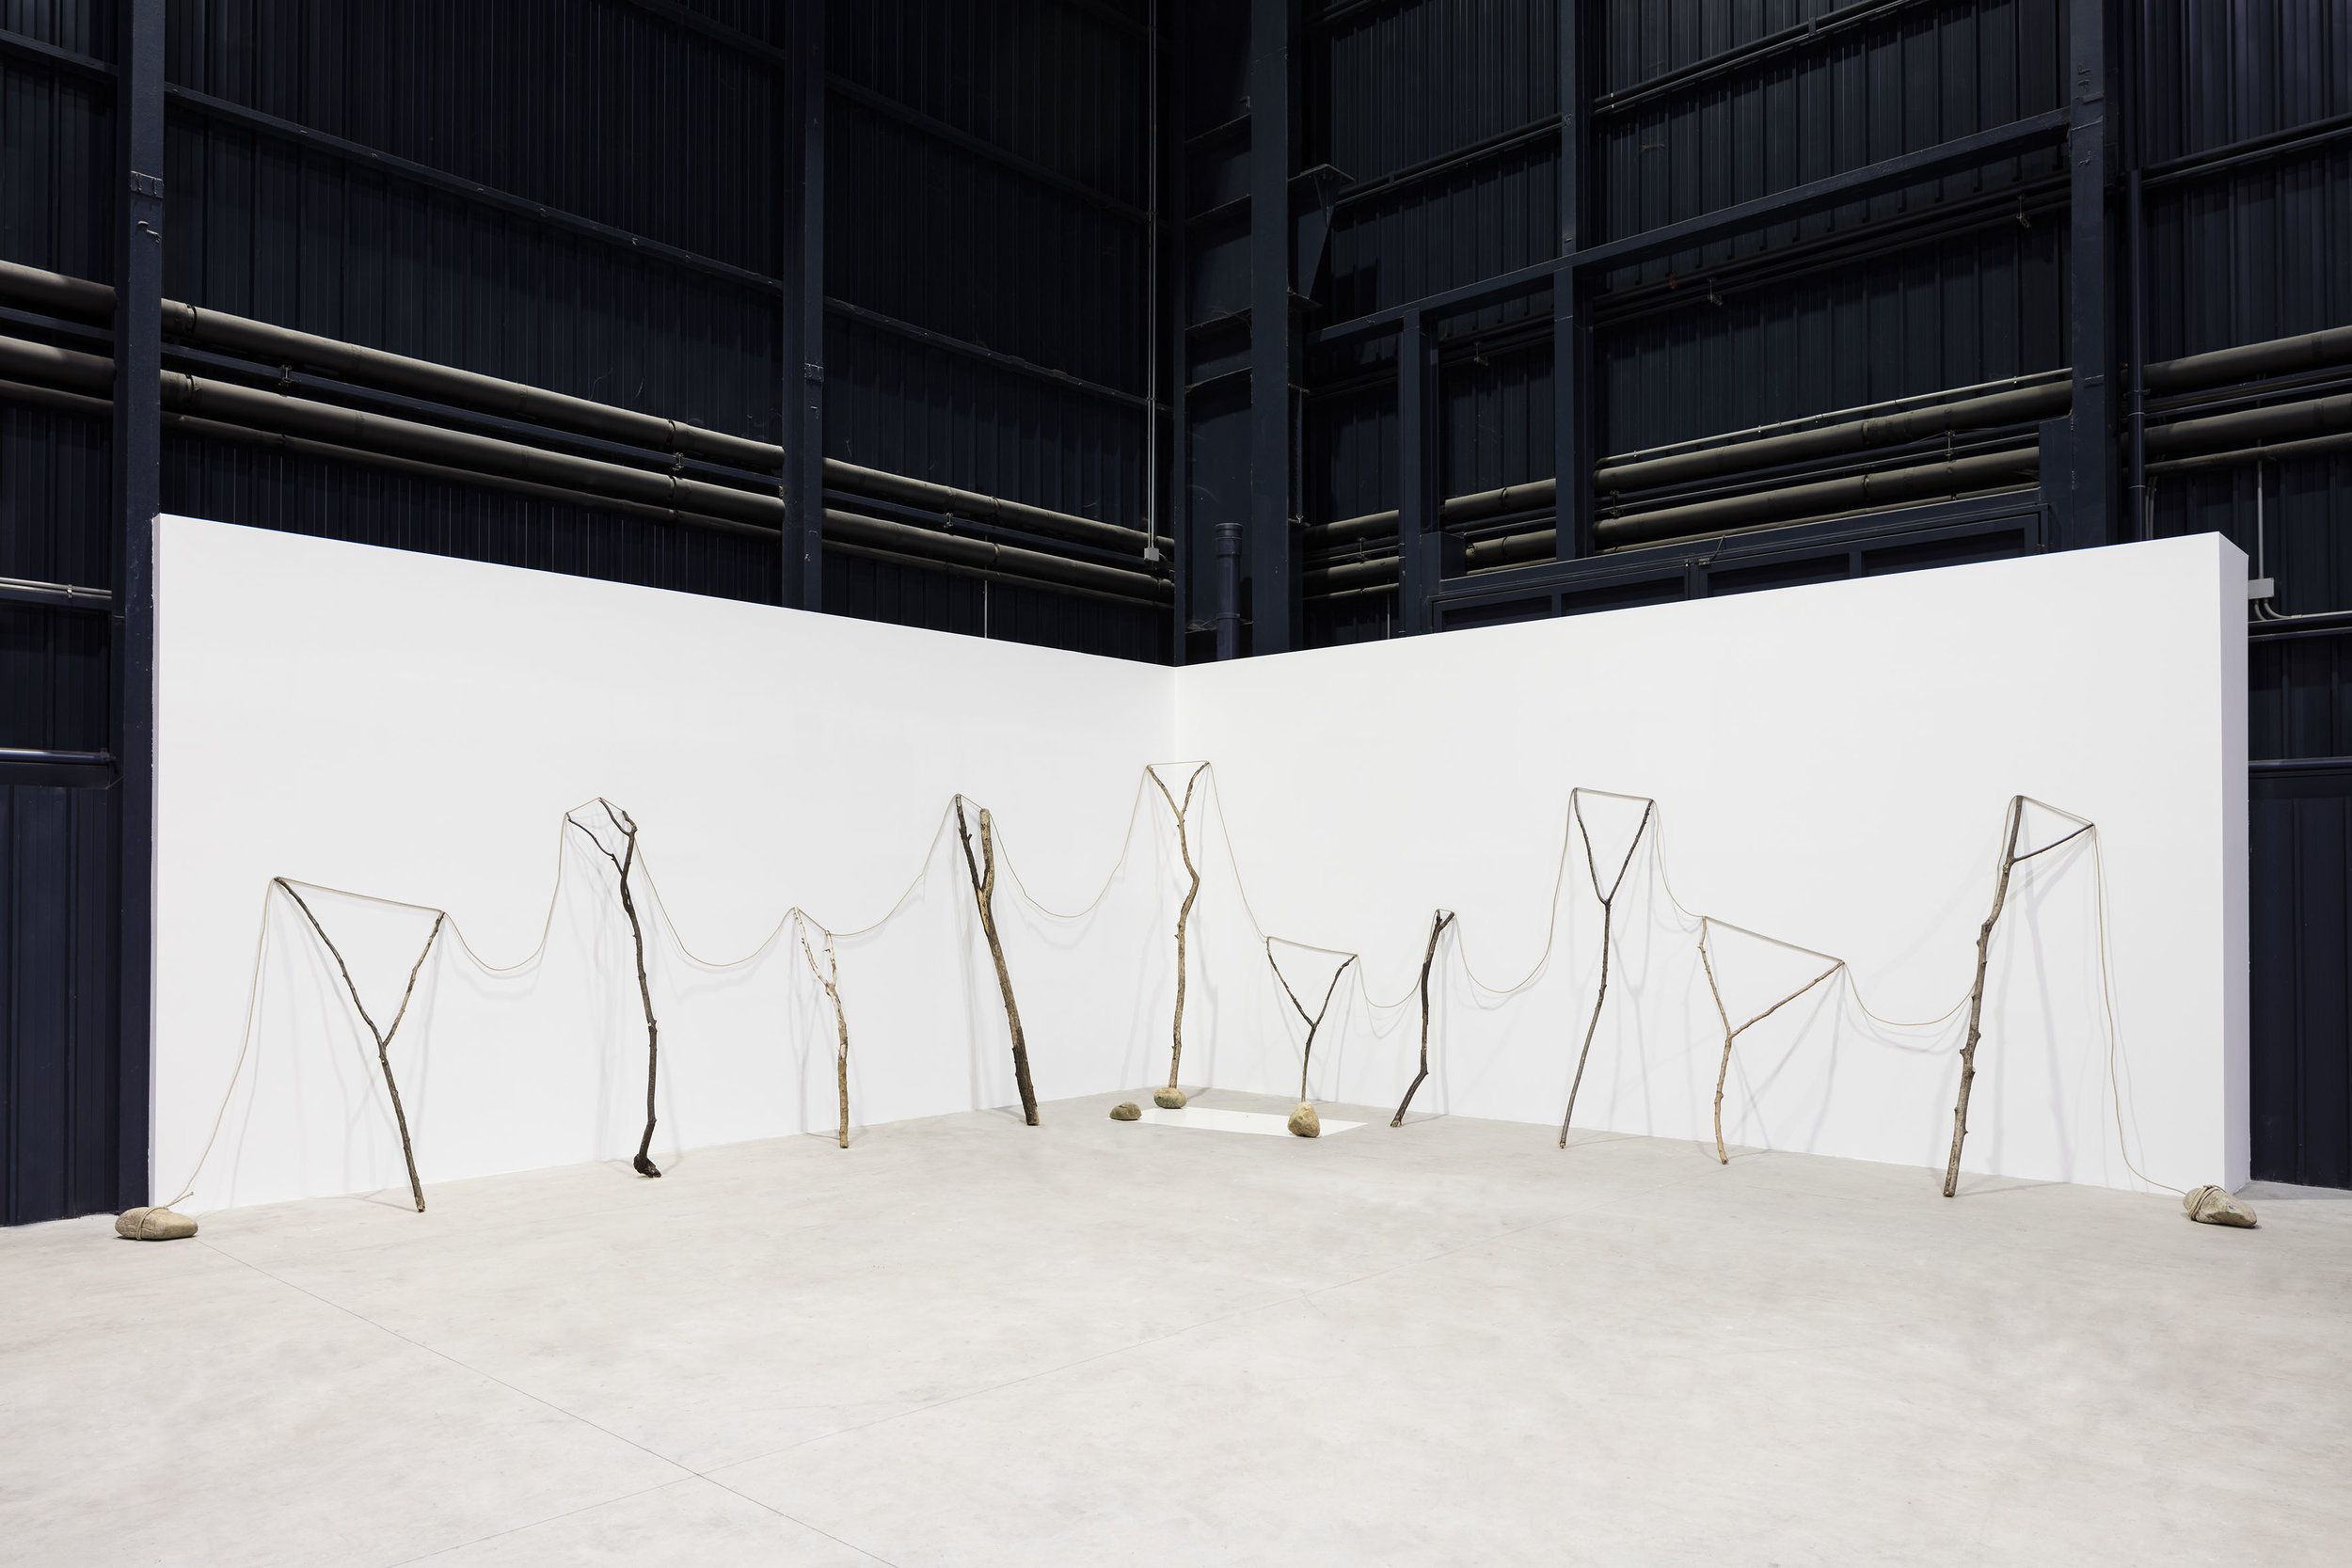 Continuous Existence—HB , 1977/2016 連界—HB ( Renkai—HB ) Rope, branches, stones, painted zinc plate Dimensions variable Installation view,  Kishio Suga: Situations , Pirelli HangarBicocca, Milan, 2016 Photo: Agostino Osio; Courtesy Pirelli HangarBicocca, Milan